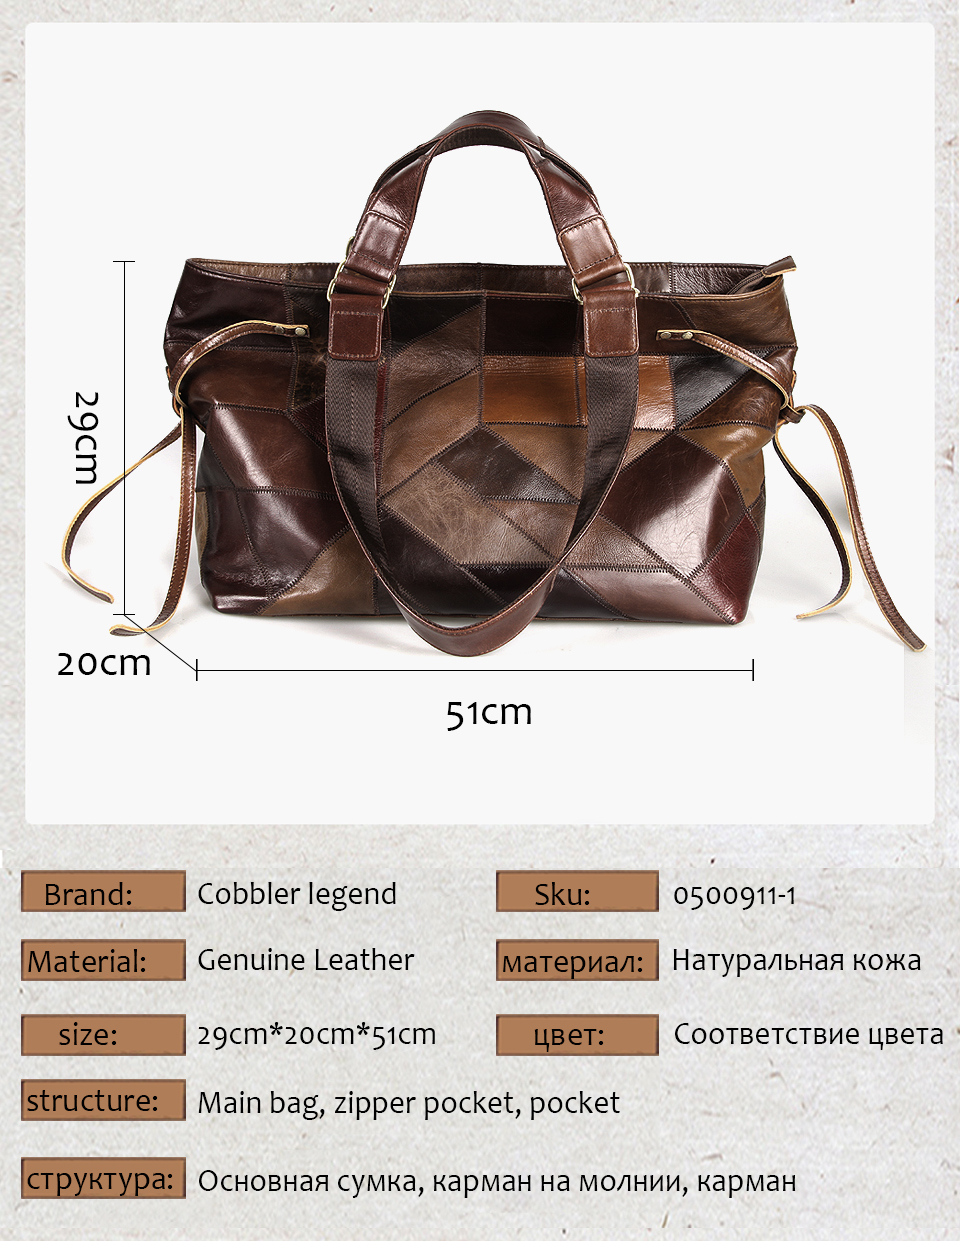 Big Bag for Women Genuine Leather Shoulder Bag Hfca5a80a9a184ed9ba4fe6c146b0f99dl Bag